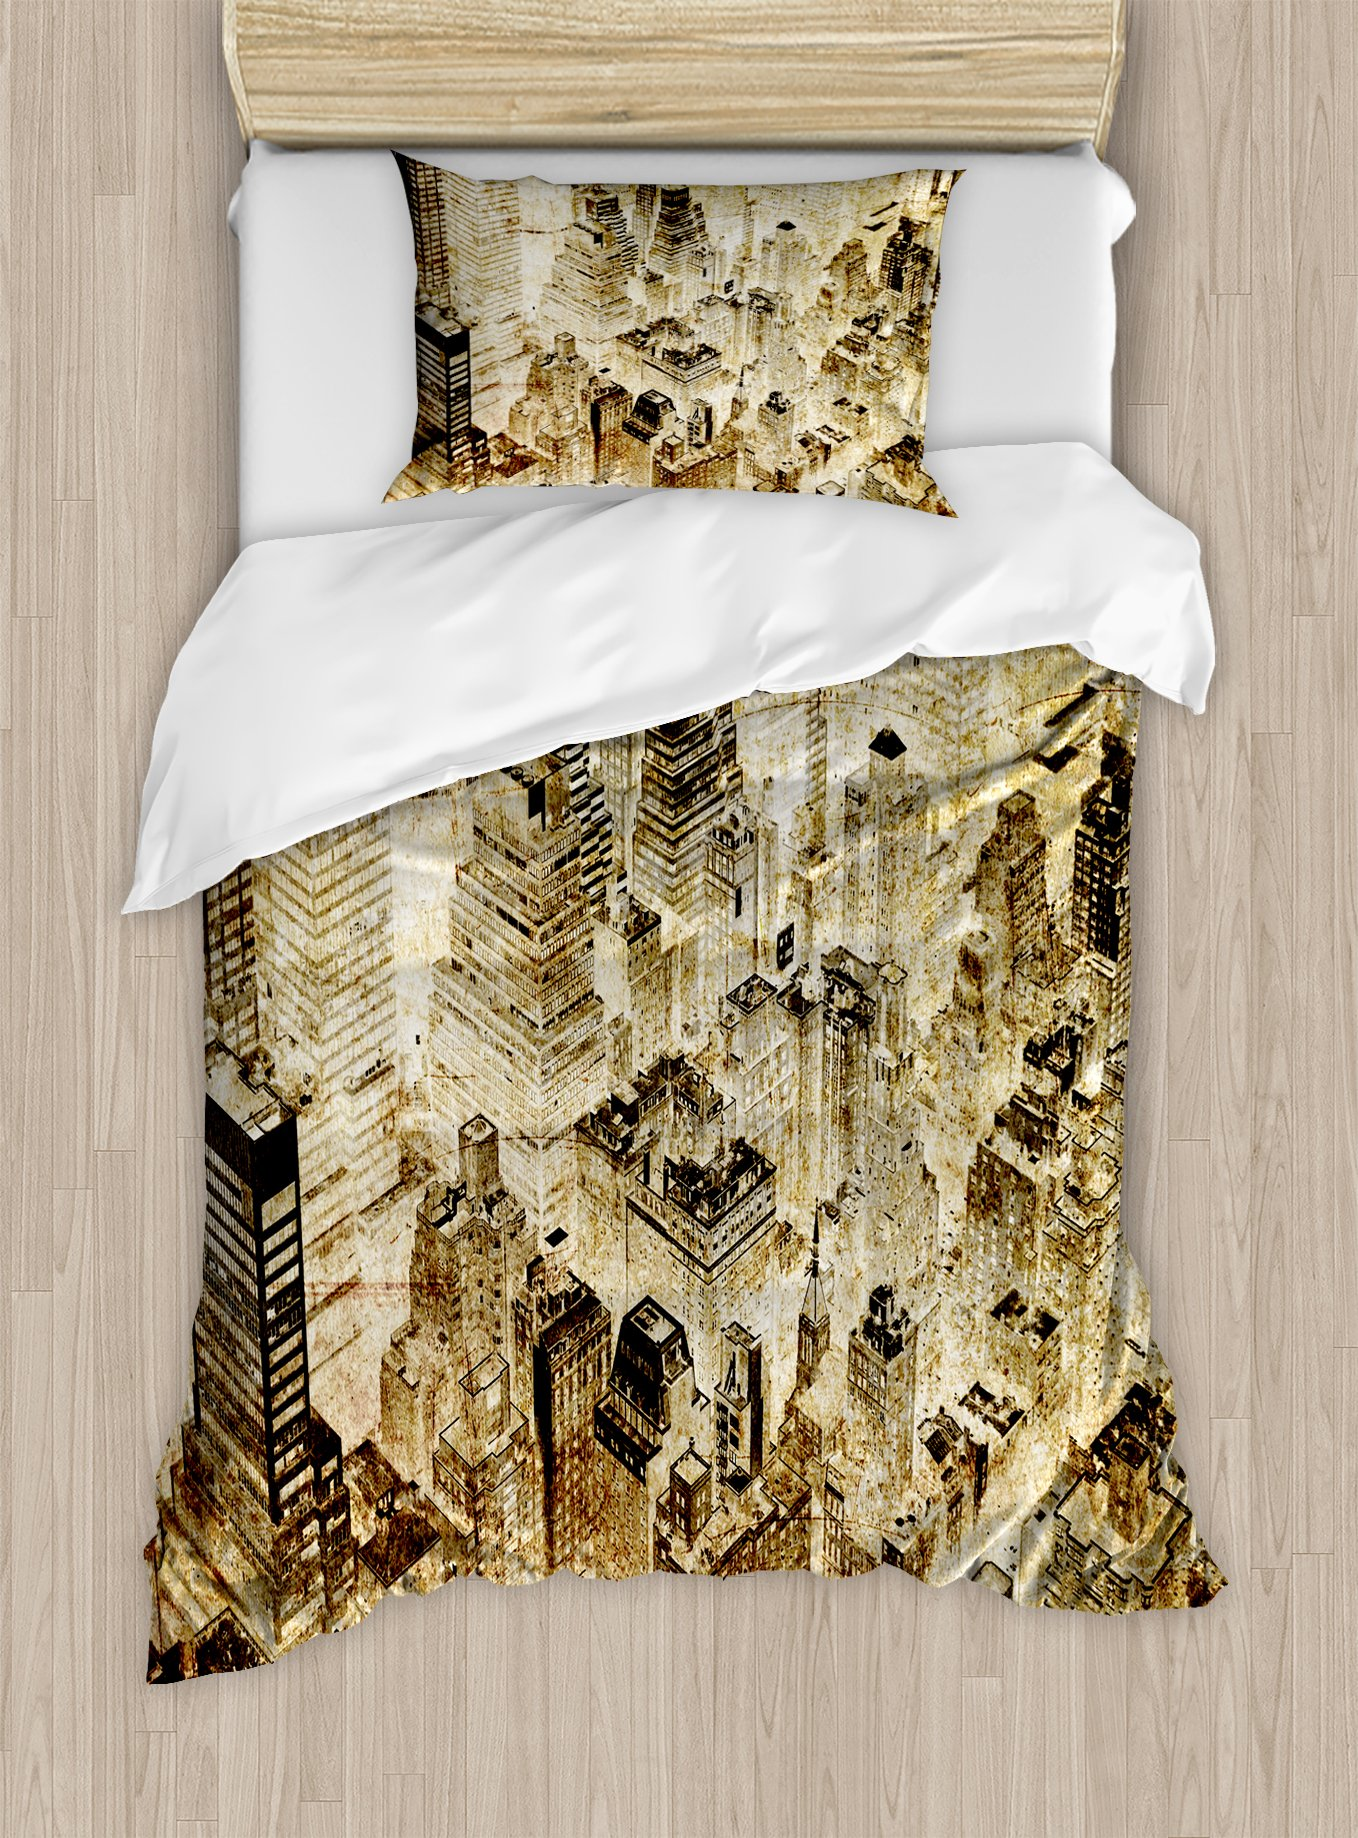 Ambesonne Vintage Duvet Cover Set Twin Size, High Buildings Night Luminous United States of America City Vibrant Alive Town Photo, Decorative 2 Piece Bedding Set with 1 Pillow Sham, Yellow